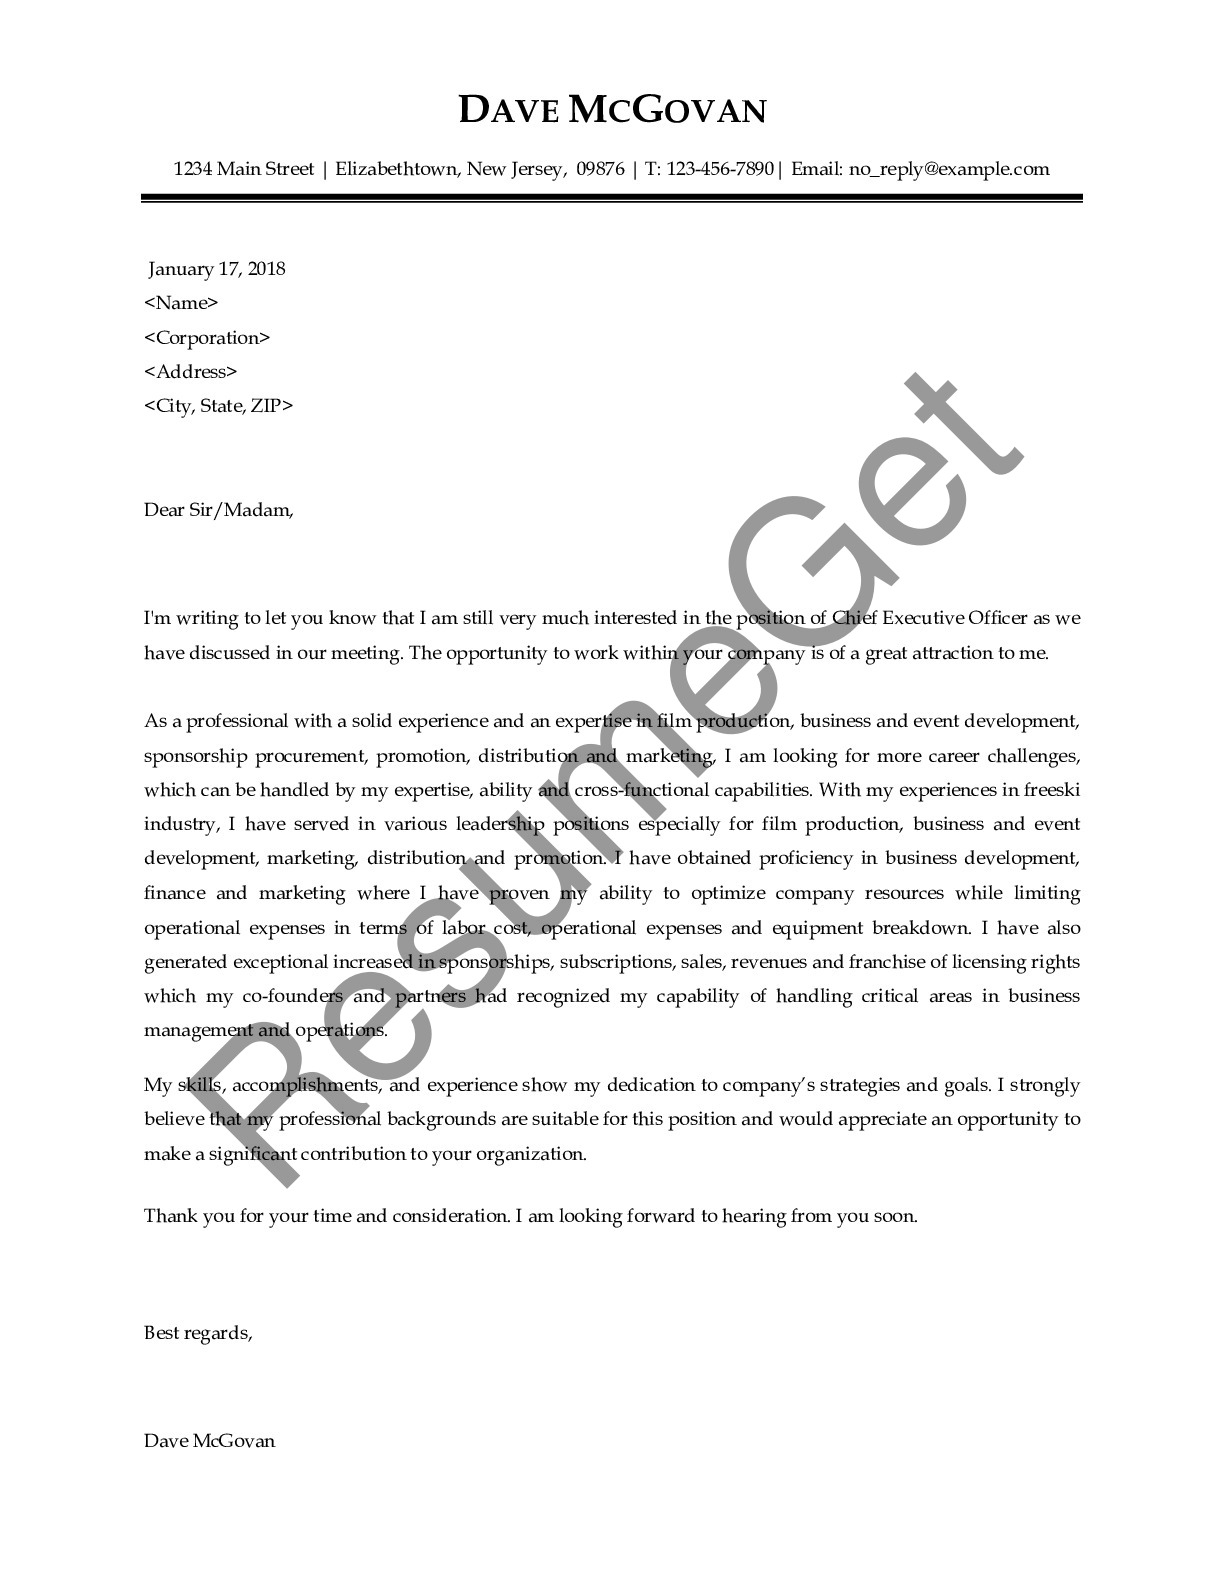 Thank You Letter for Chief Executive Officer